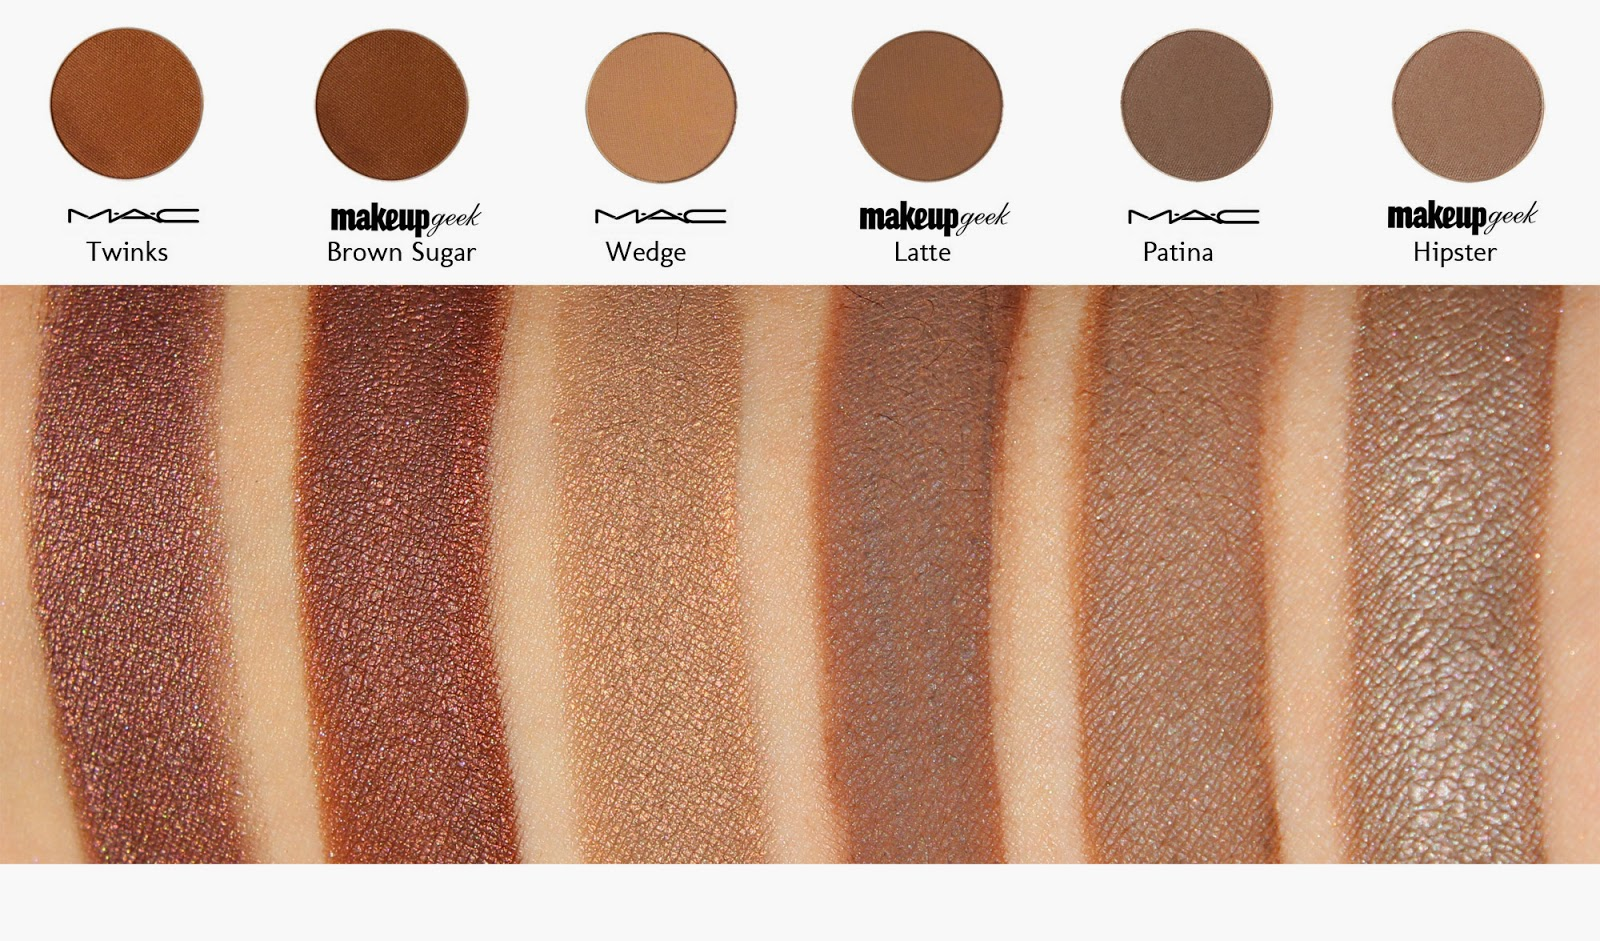 How to Choose Compact Powder for Different Skin Tones